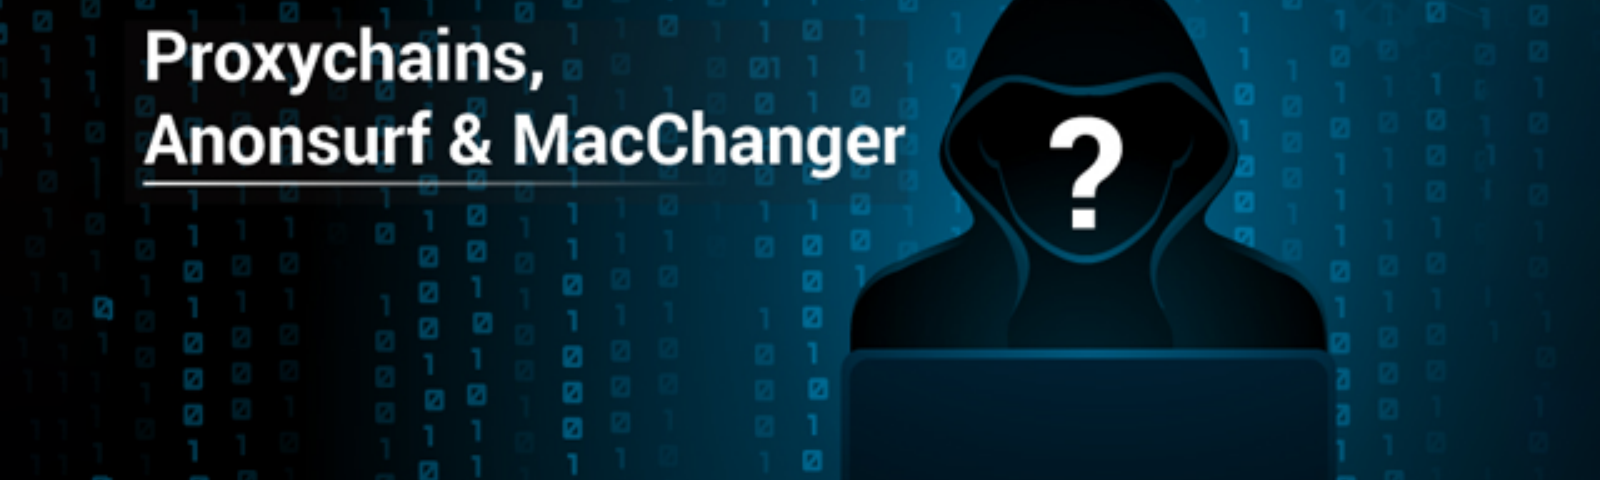 Proxychains, Anonsurf & MacChanger - Enhance your Anonymity!